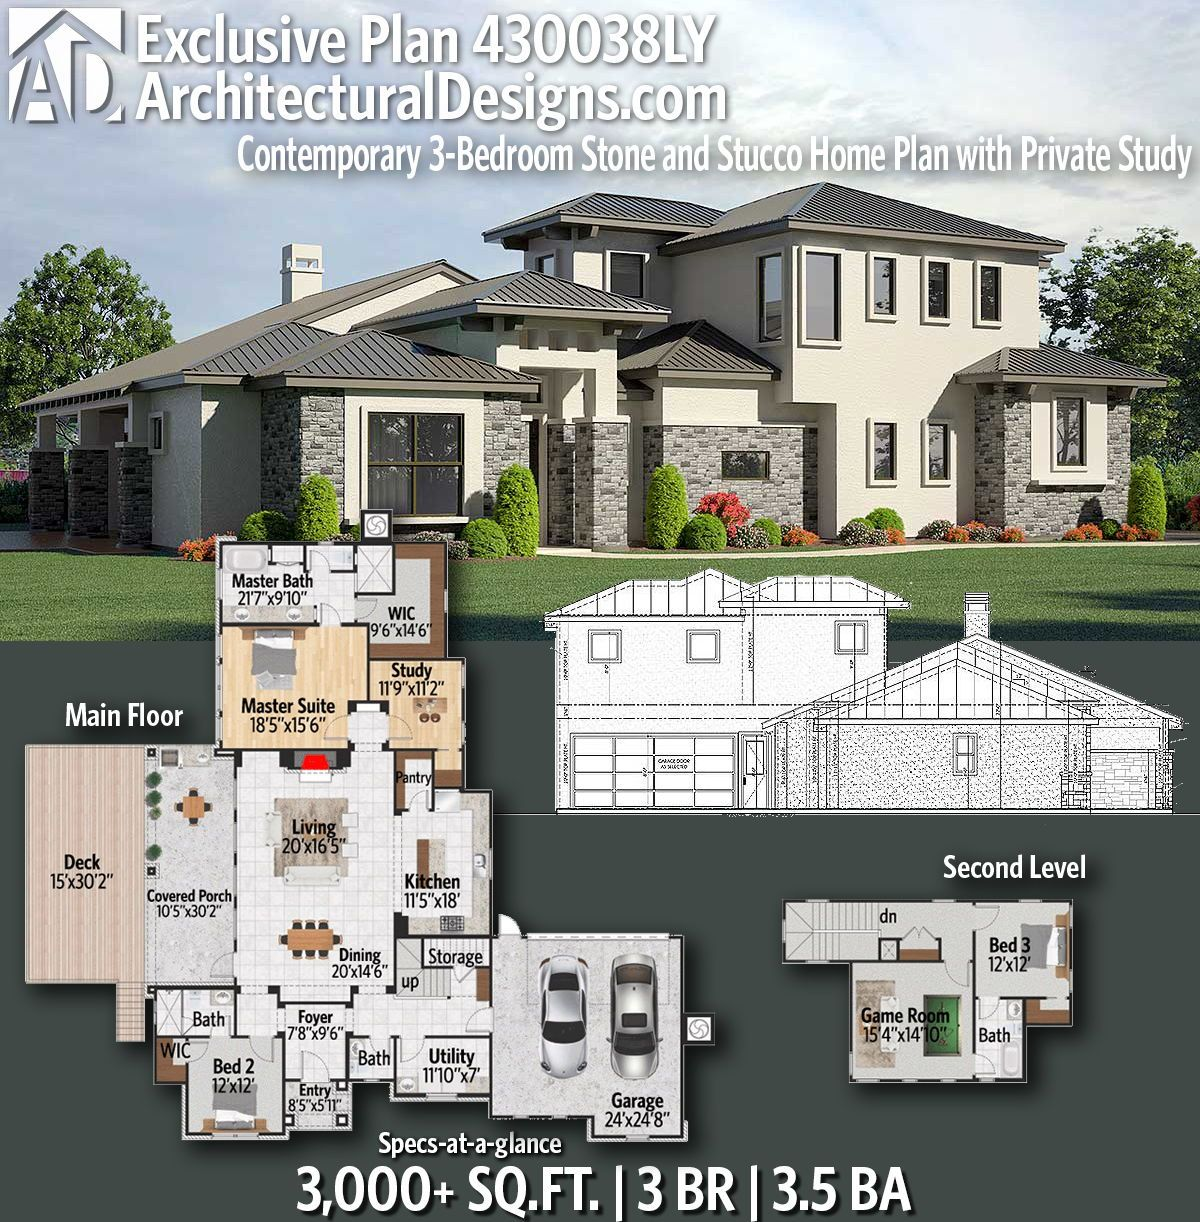 Plan 430038ly Contemporary 3 Bedroom Stone And Stucco Home Plan With Private Study House Plans Two Story House Design Home Design Floor Plans